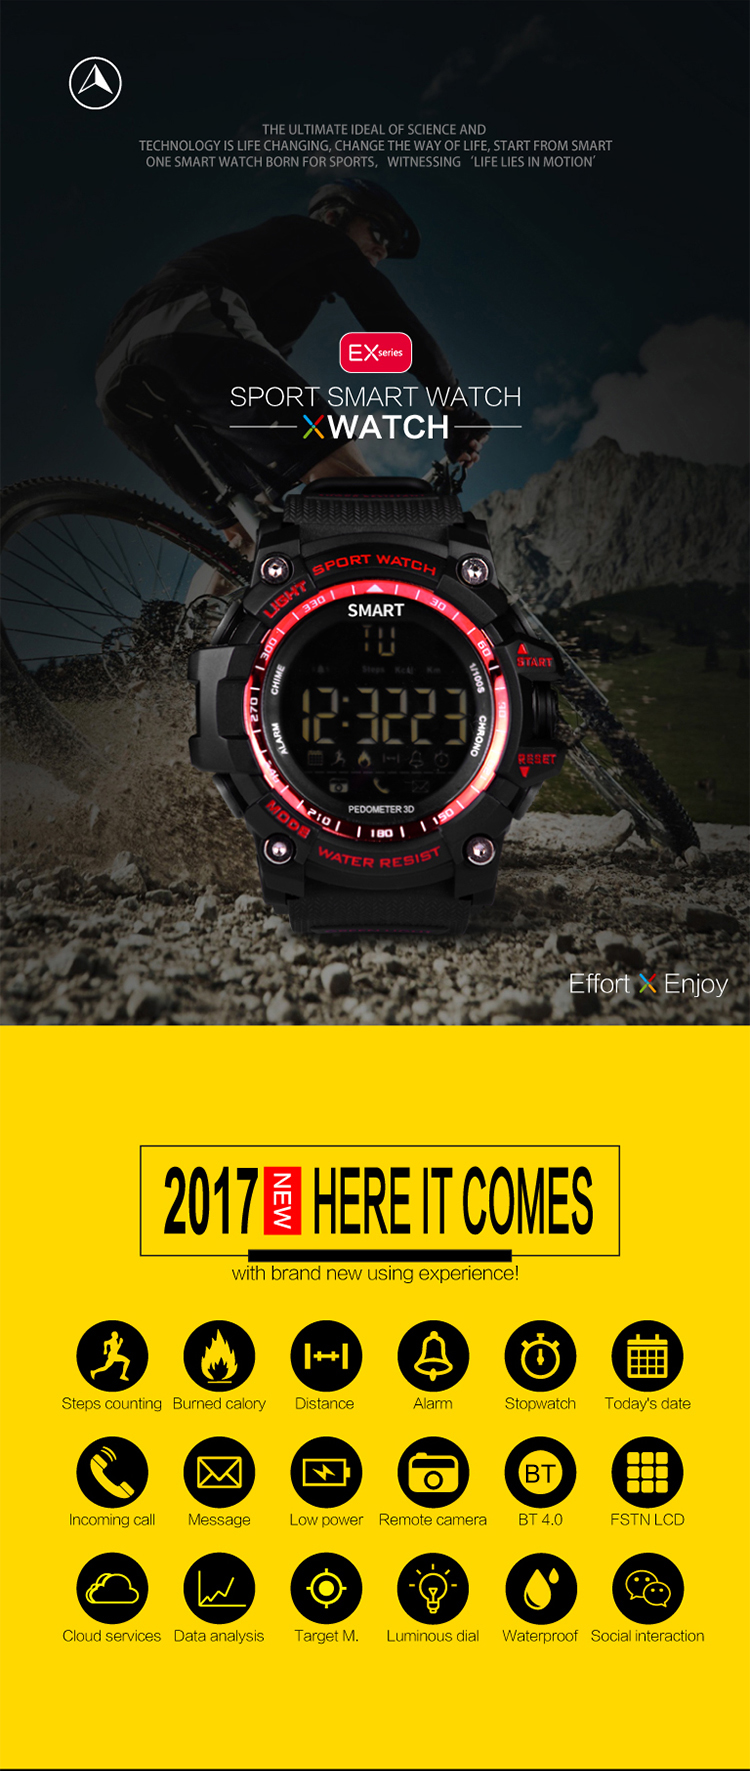 "E16 1.12"" FSTN LCD Dispaly incoming call reminding IP67 Waterproof CR2032 button battery BT 4.0 version sport wristwatch"